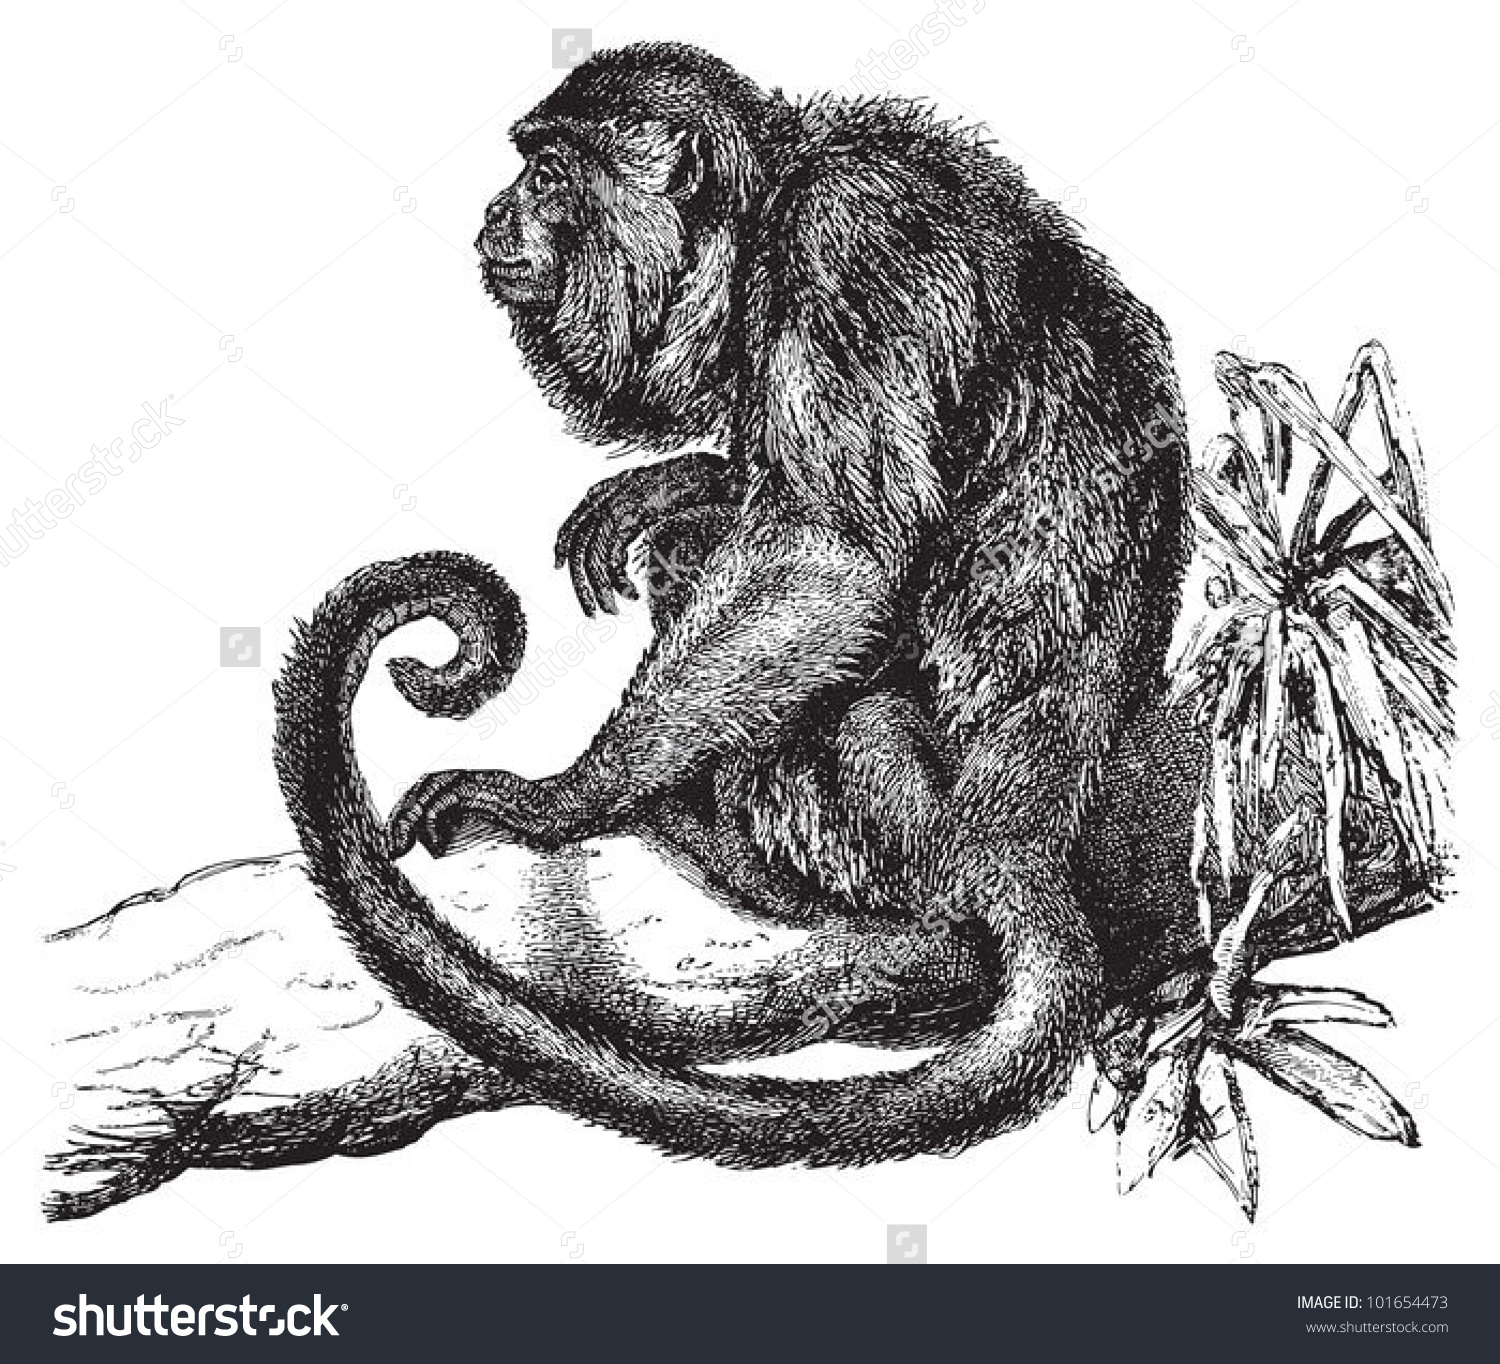 Howler Monkey clipart #2, Download drawings